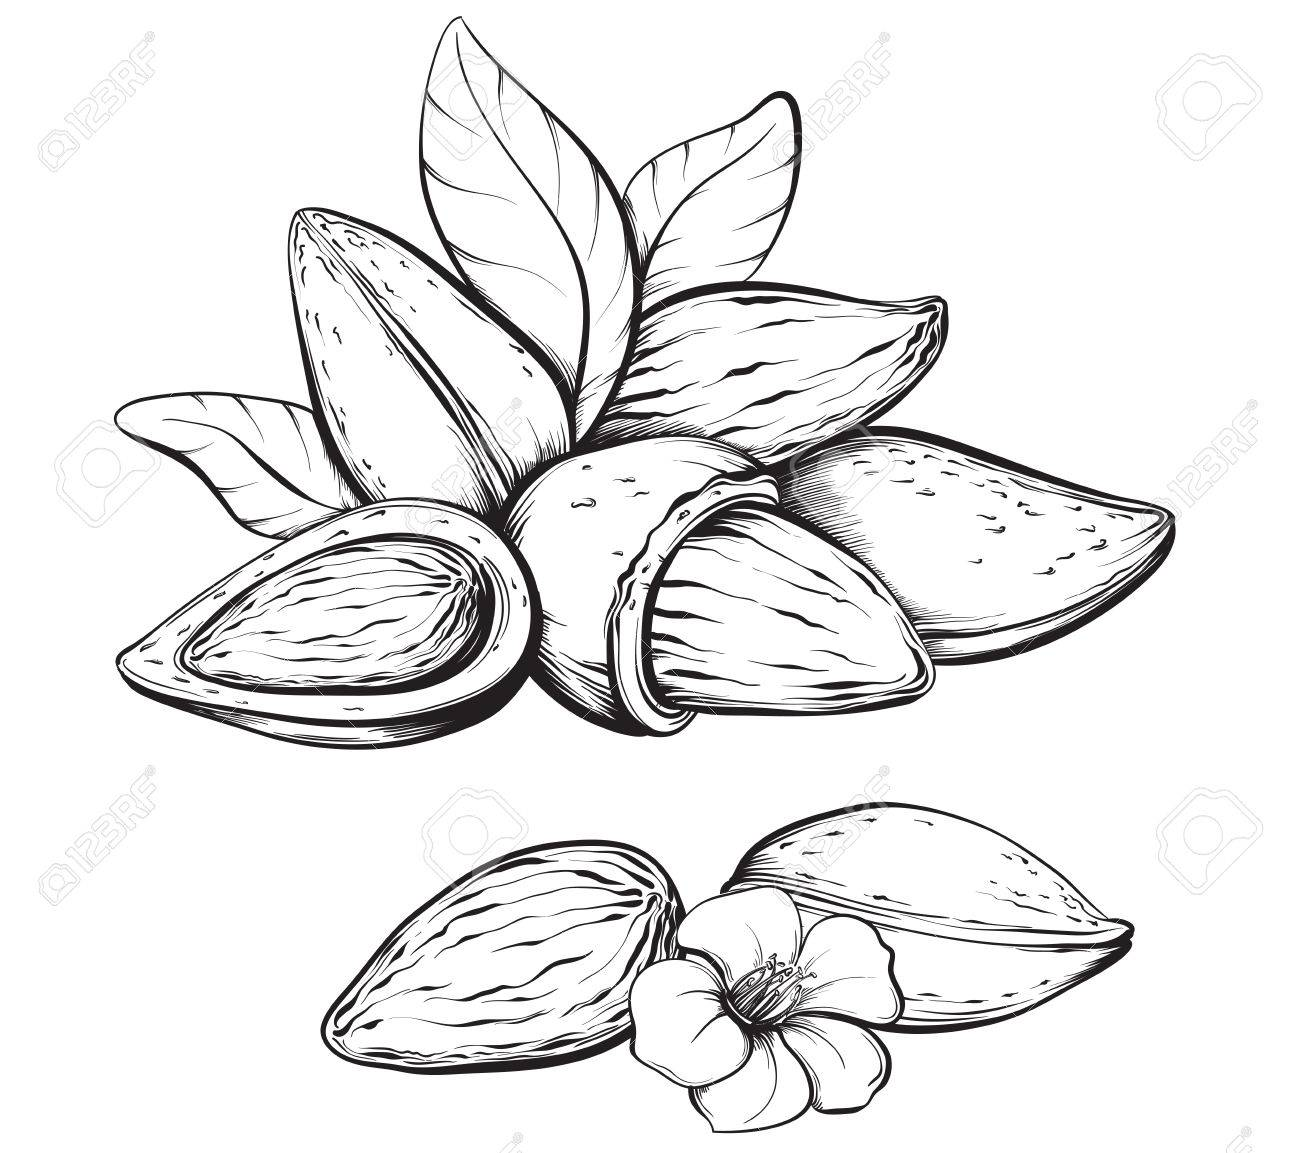 Almonds. Hand drawn sketches vector illustration on white background in vintage style. - 53584883